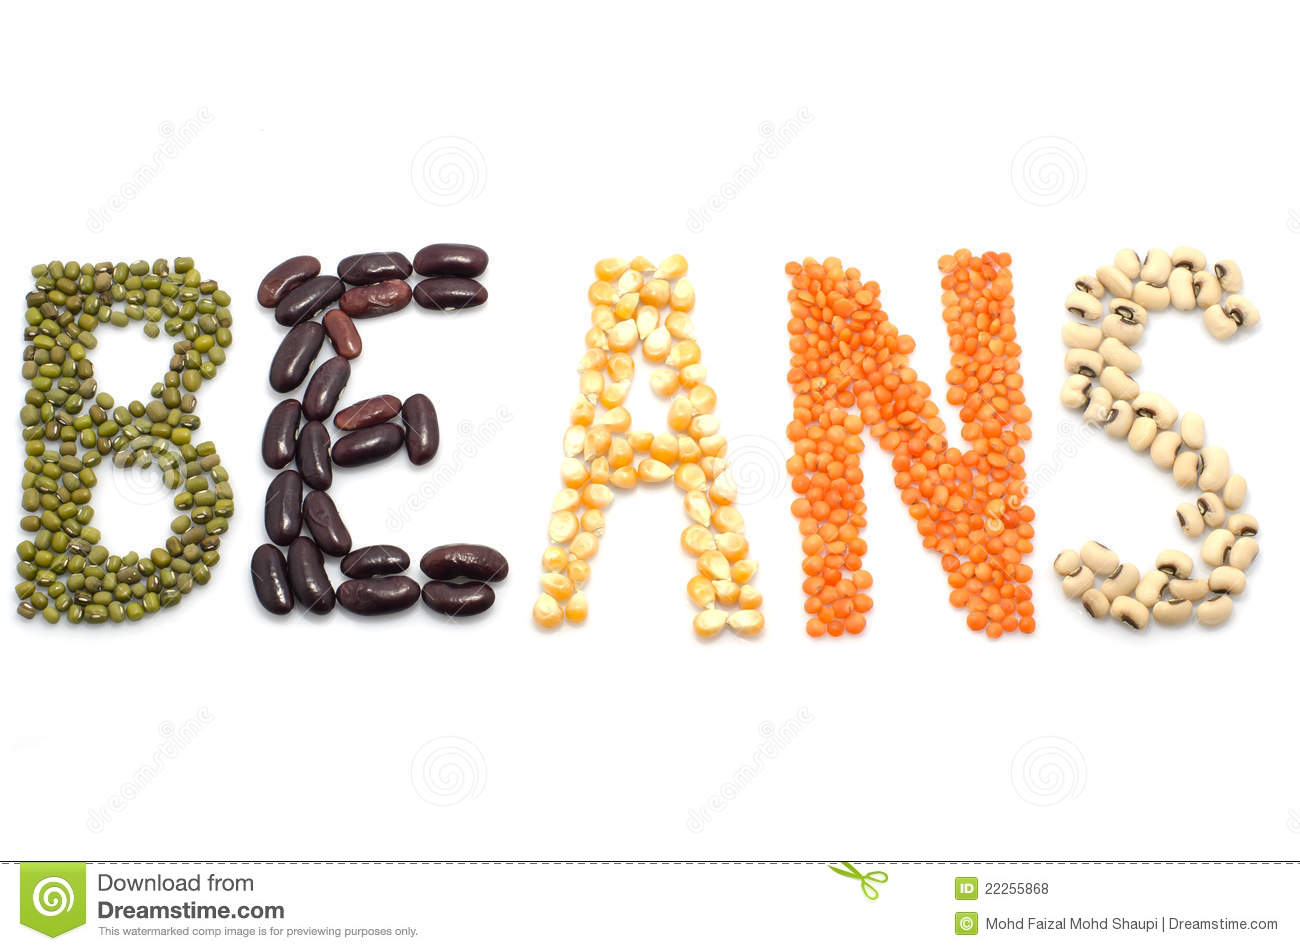 The Dry Beans Royalty Free Stock Photos - Image: 22255868